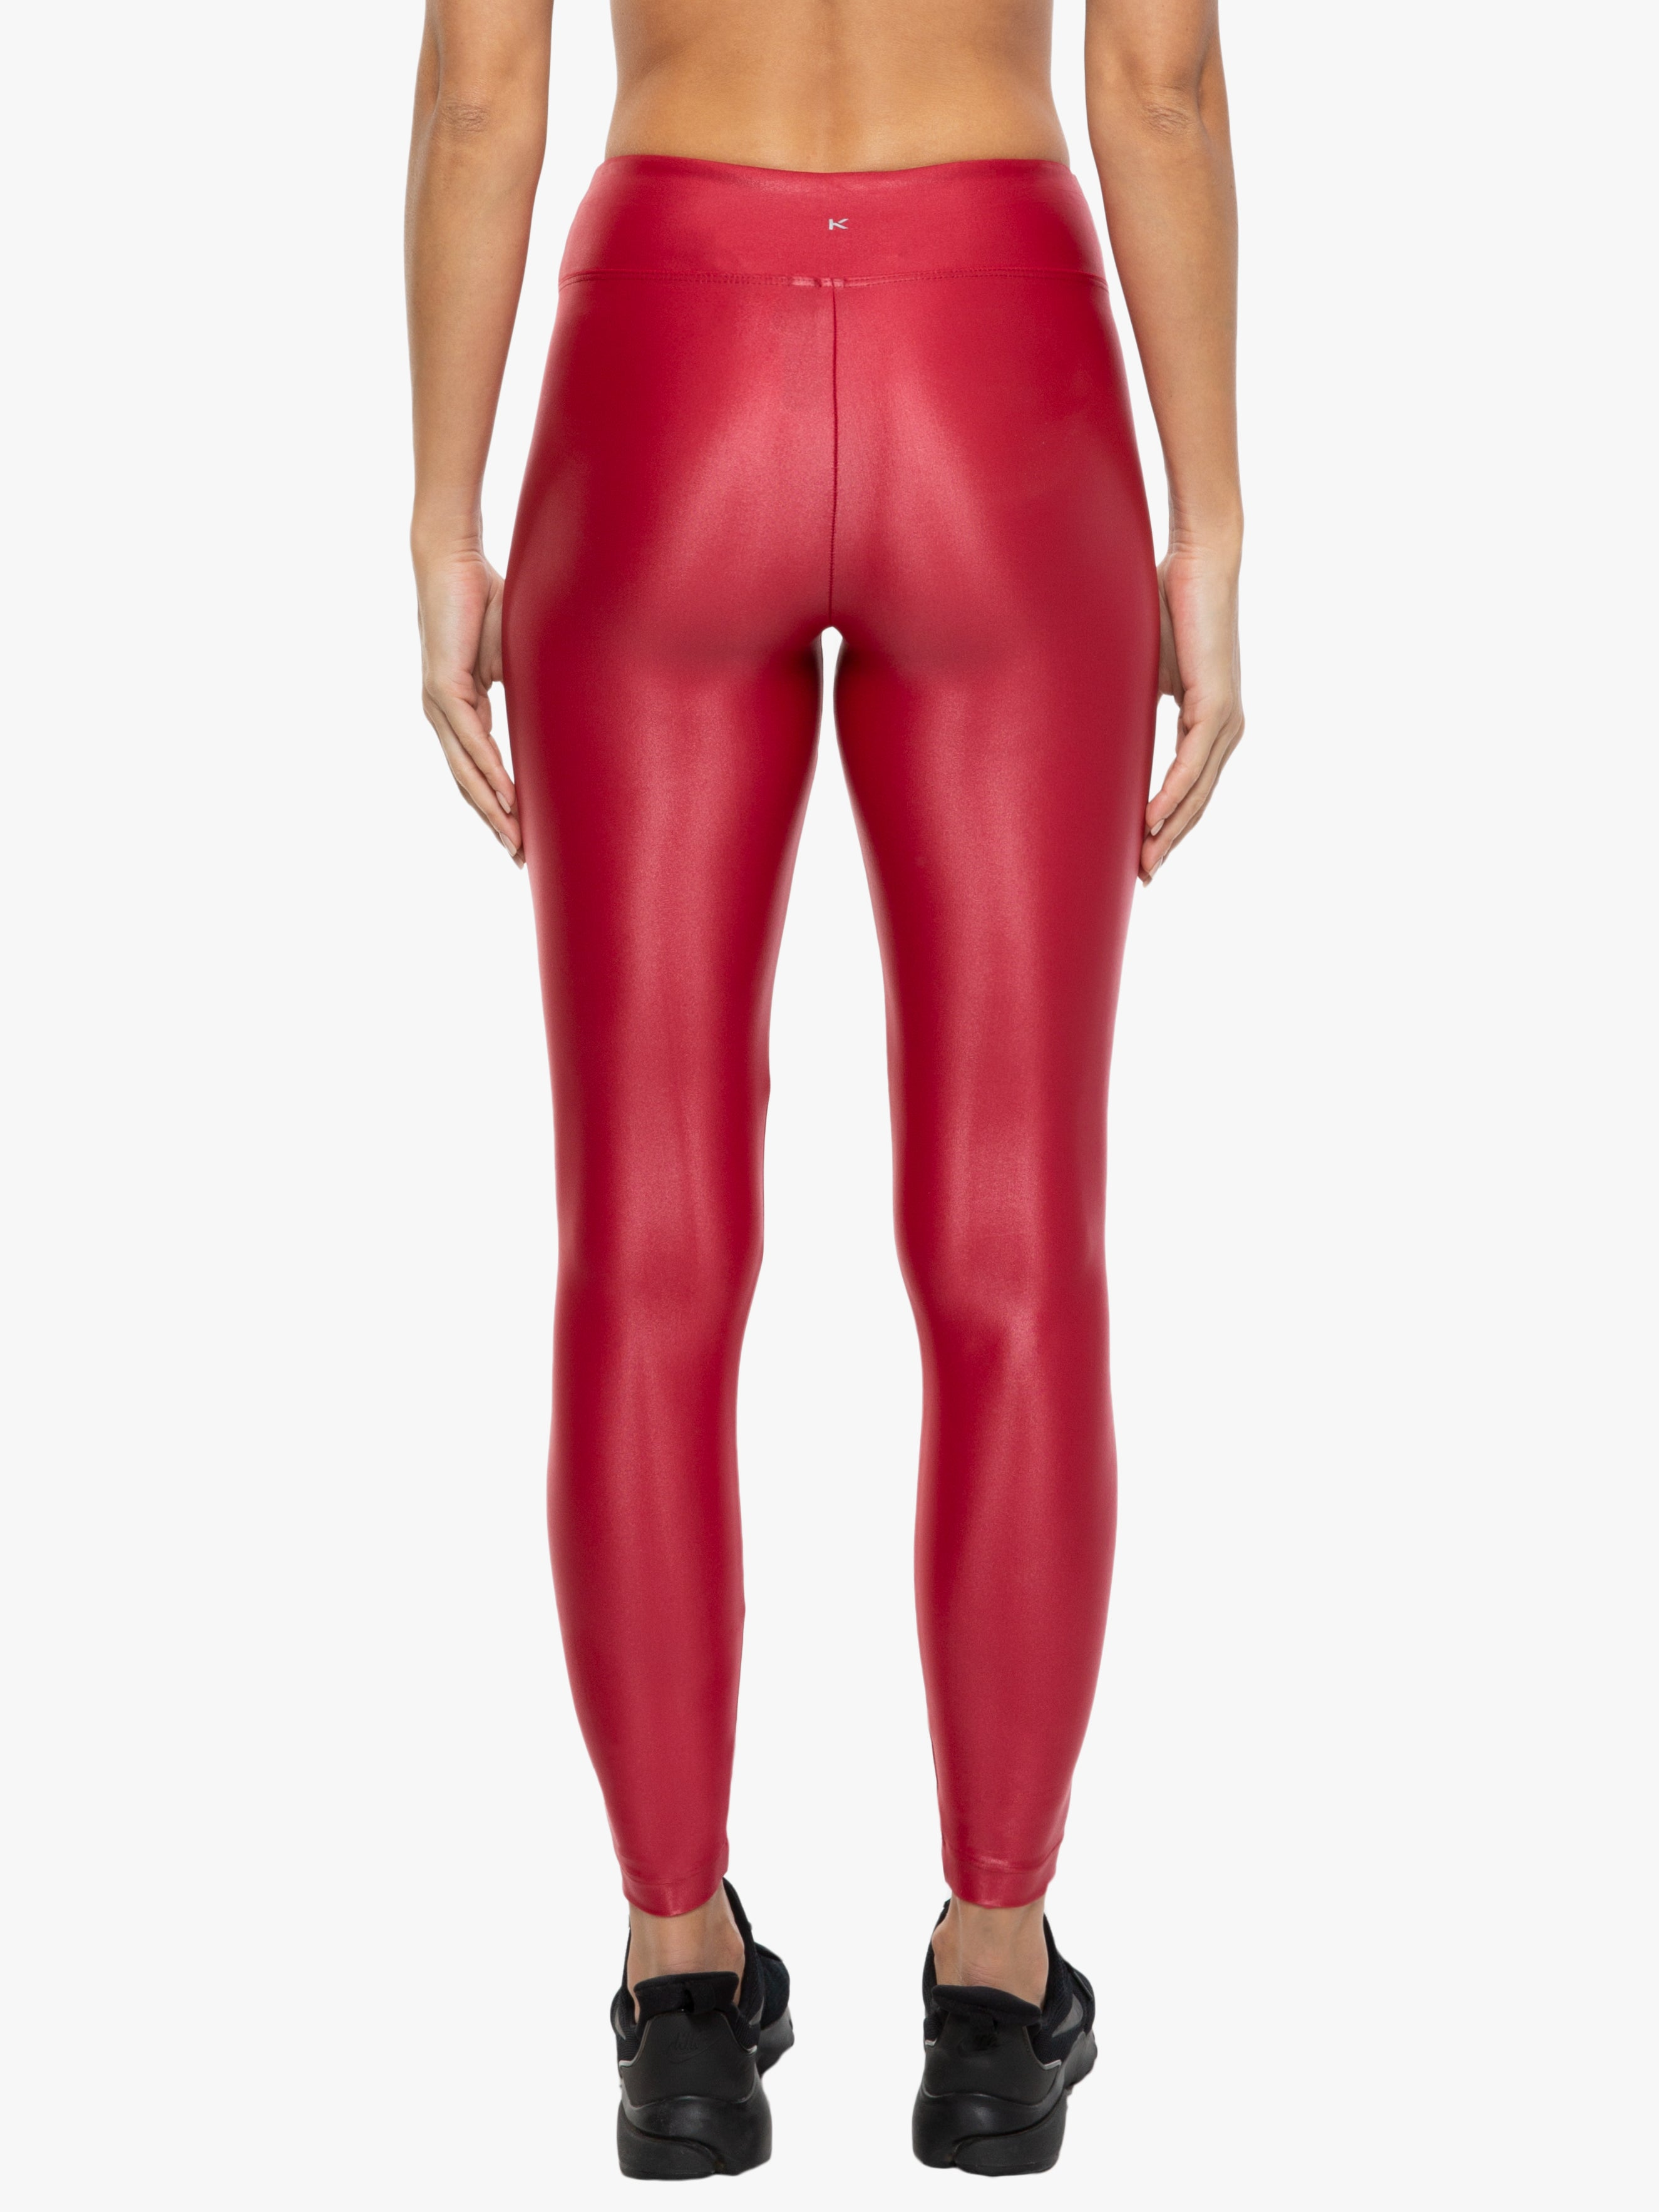 Lustrous High Rise Legging - Crimson